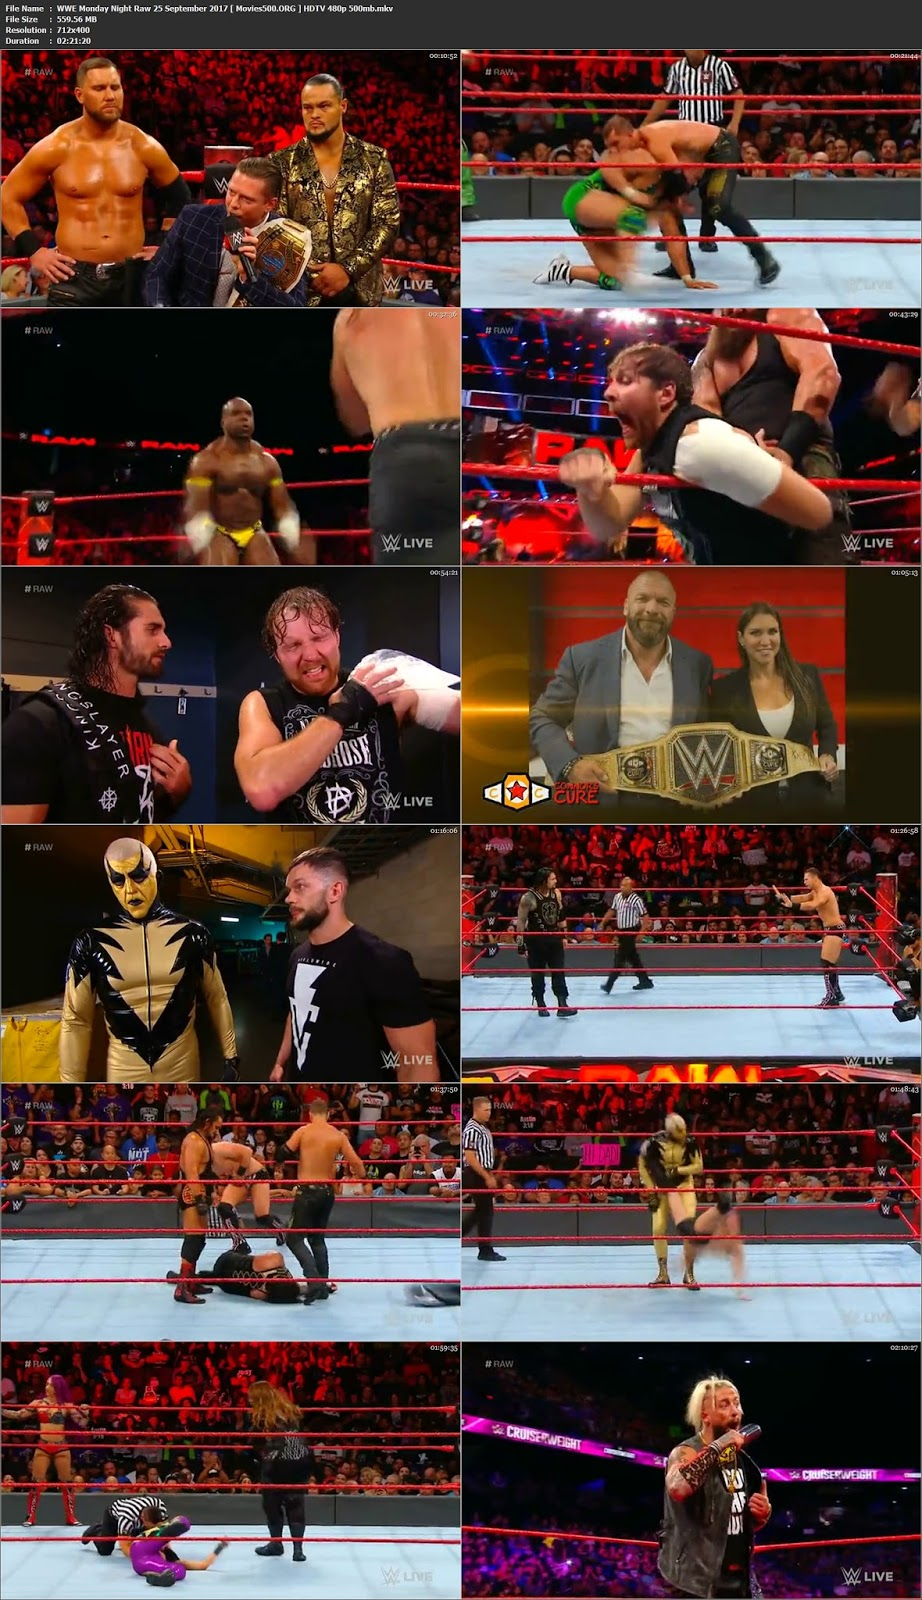 WWE Monday Night Raw 25 September 2017 Full Show Download HDTV 480p at freedomcopy.com